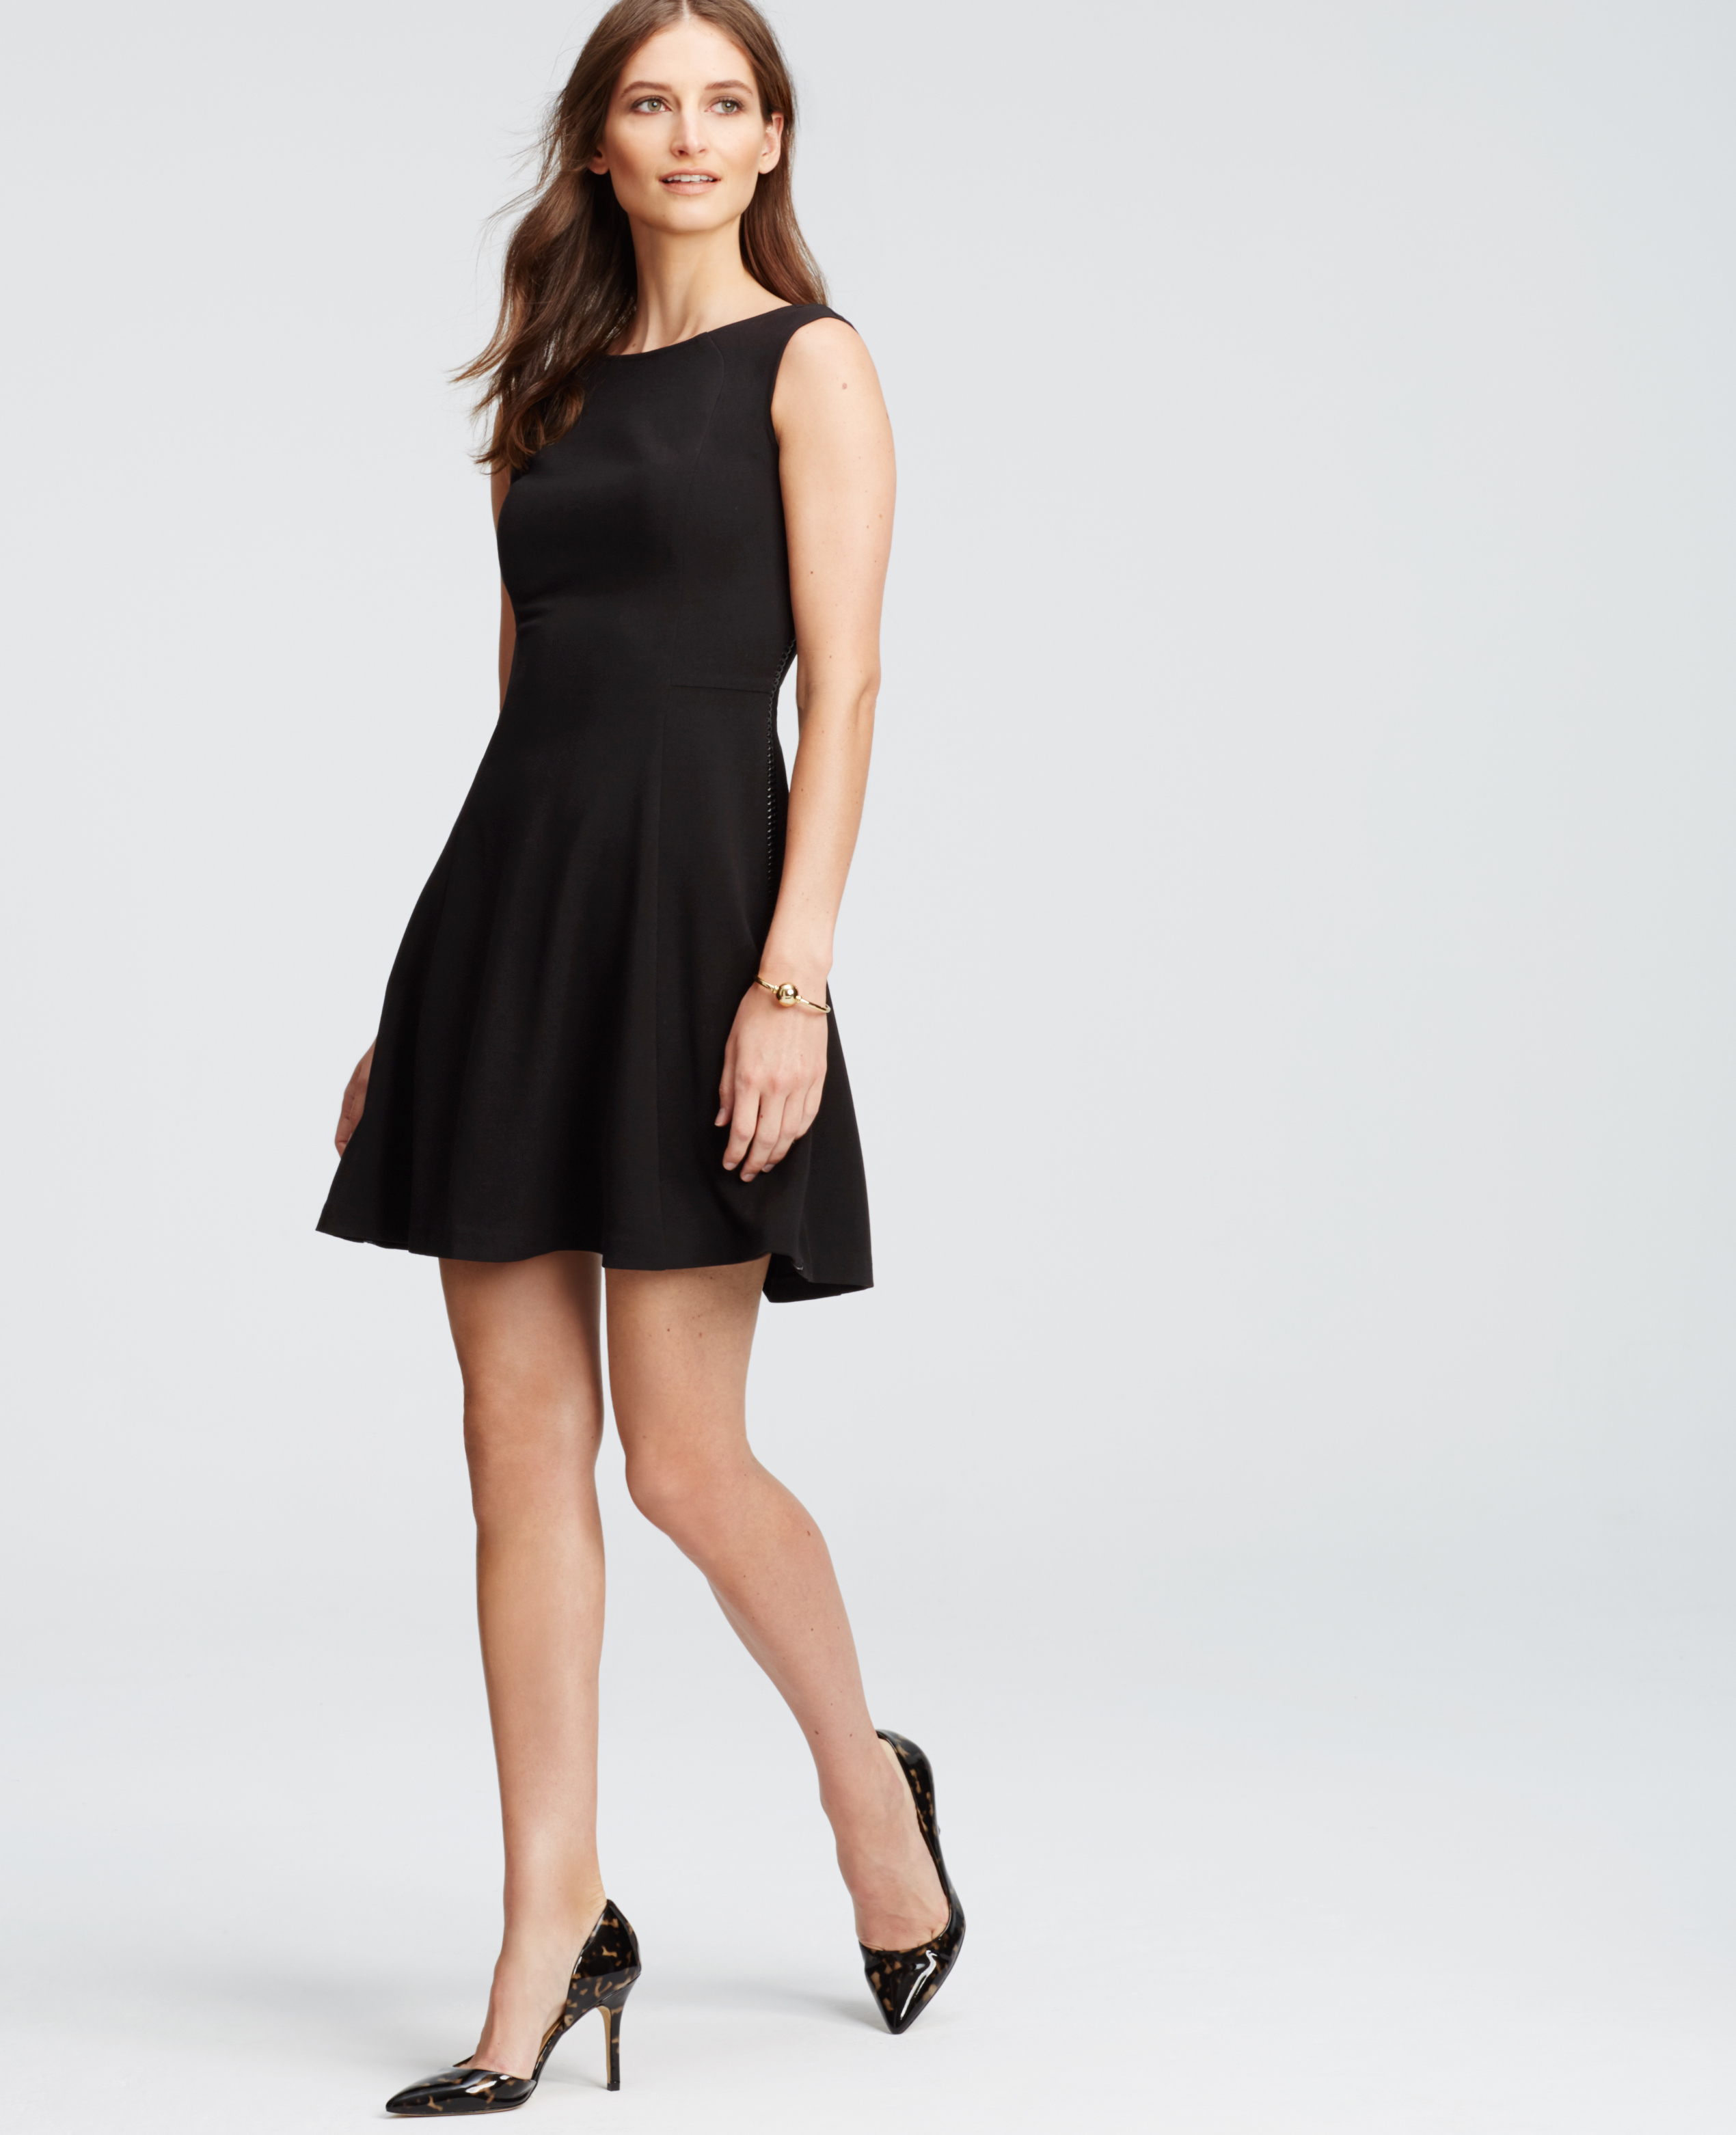 Lyst - Ann Taylor Petite Braid Seamed Flare Dress in Black